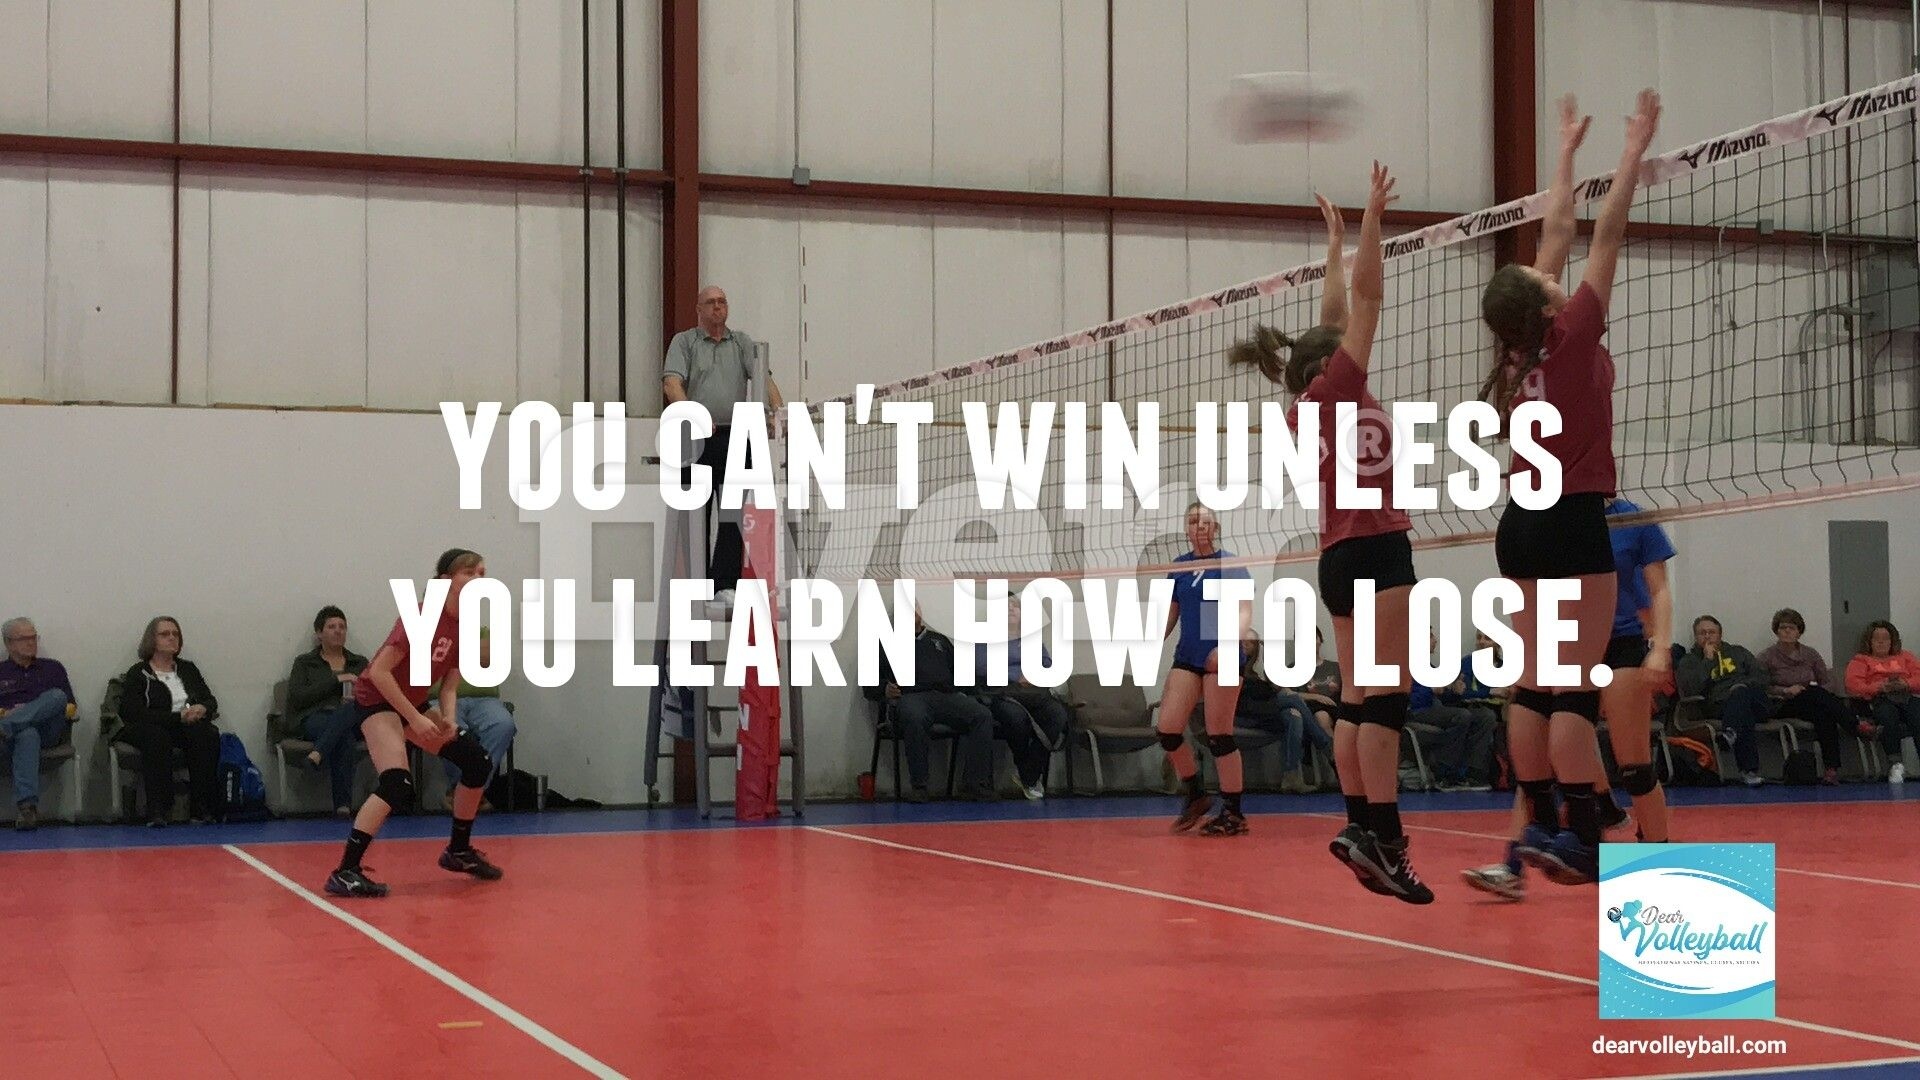 75 Volleyball Motivational Quotes And Images That Inspire Success Inspirational Volleyball Quotes Motivational Volleyball Quotes Volleyball Quotes